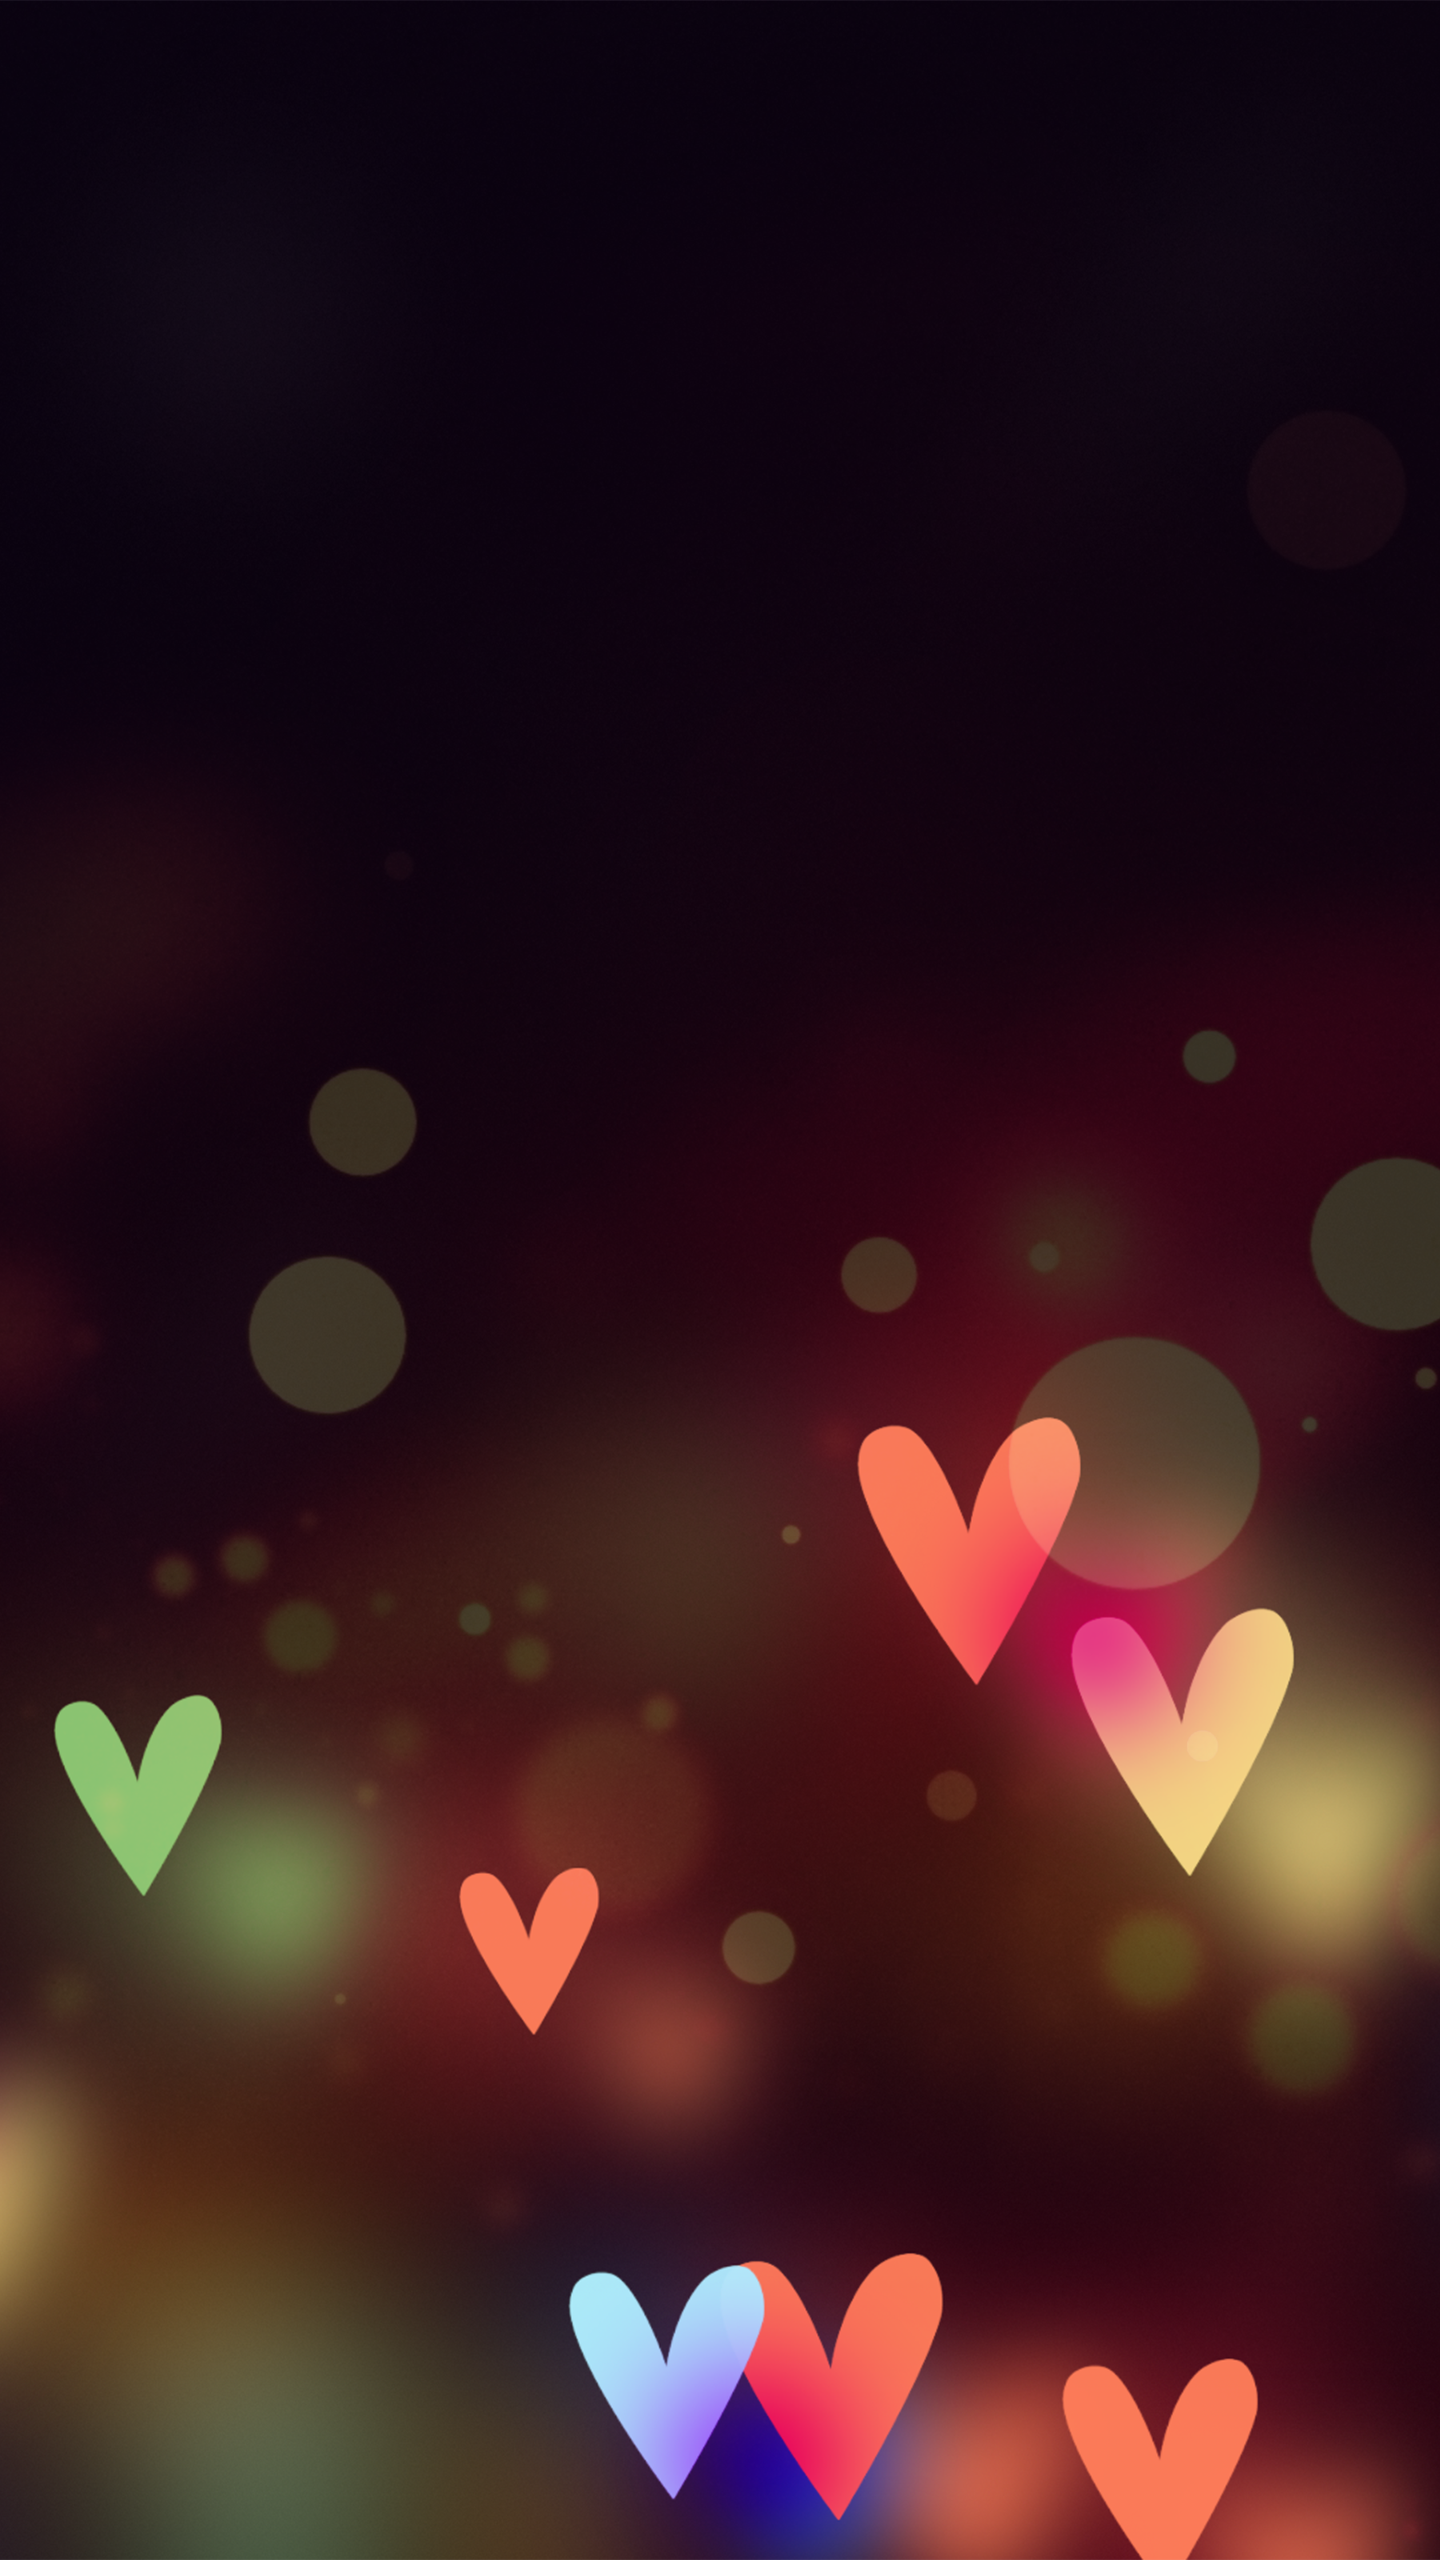 Best Love Wallpaper For Iphone : Love Wallpaper iPhone 6S Plus by lirking20 on DeviantArt